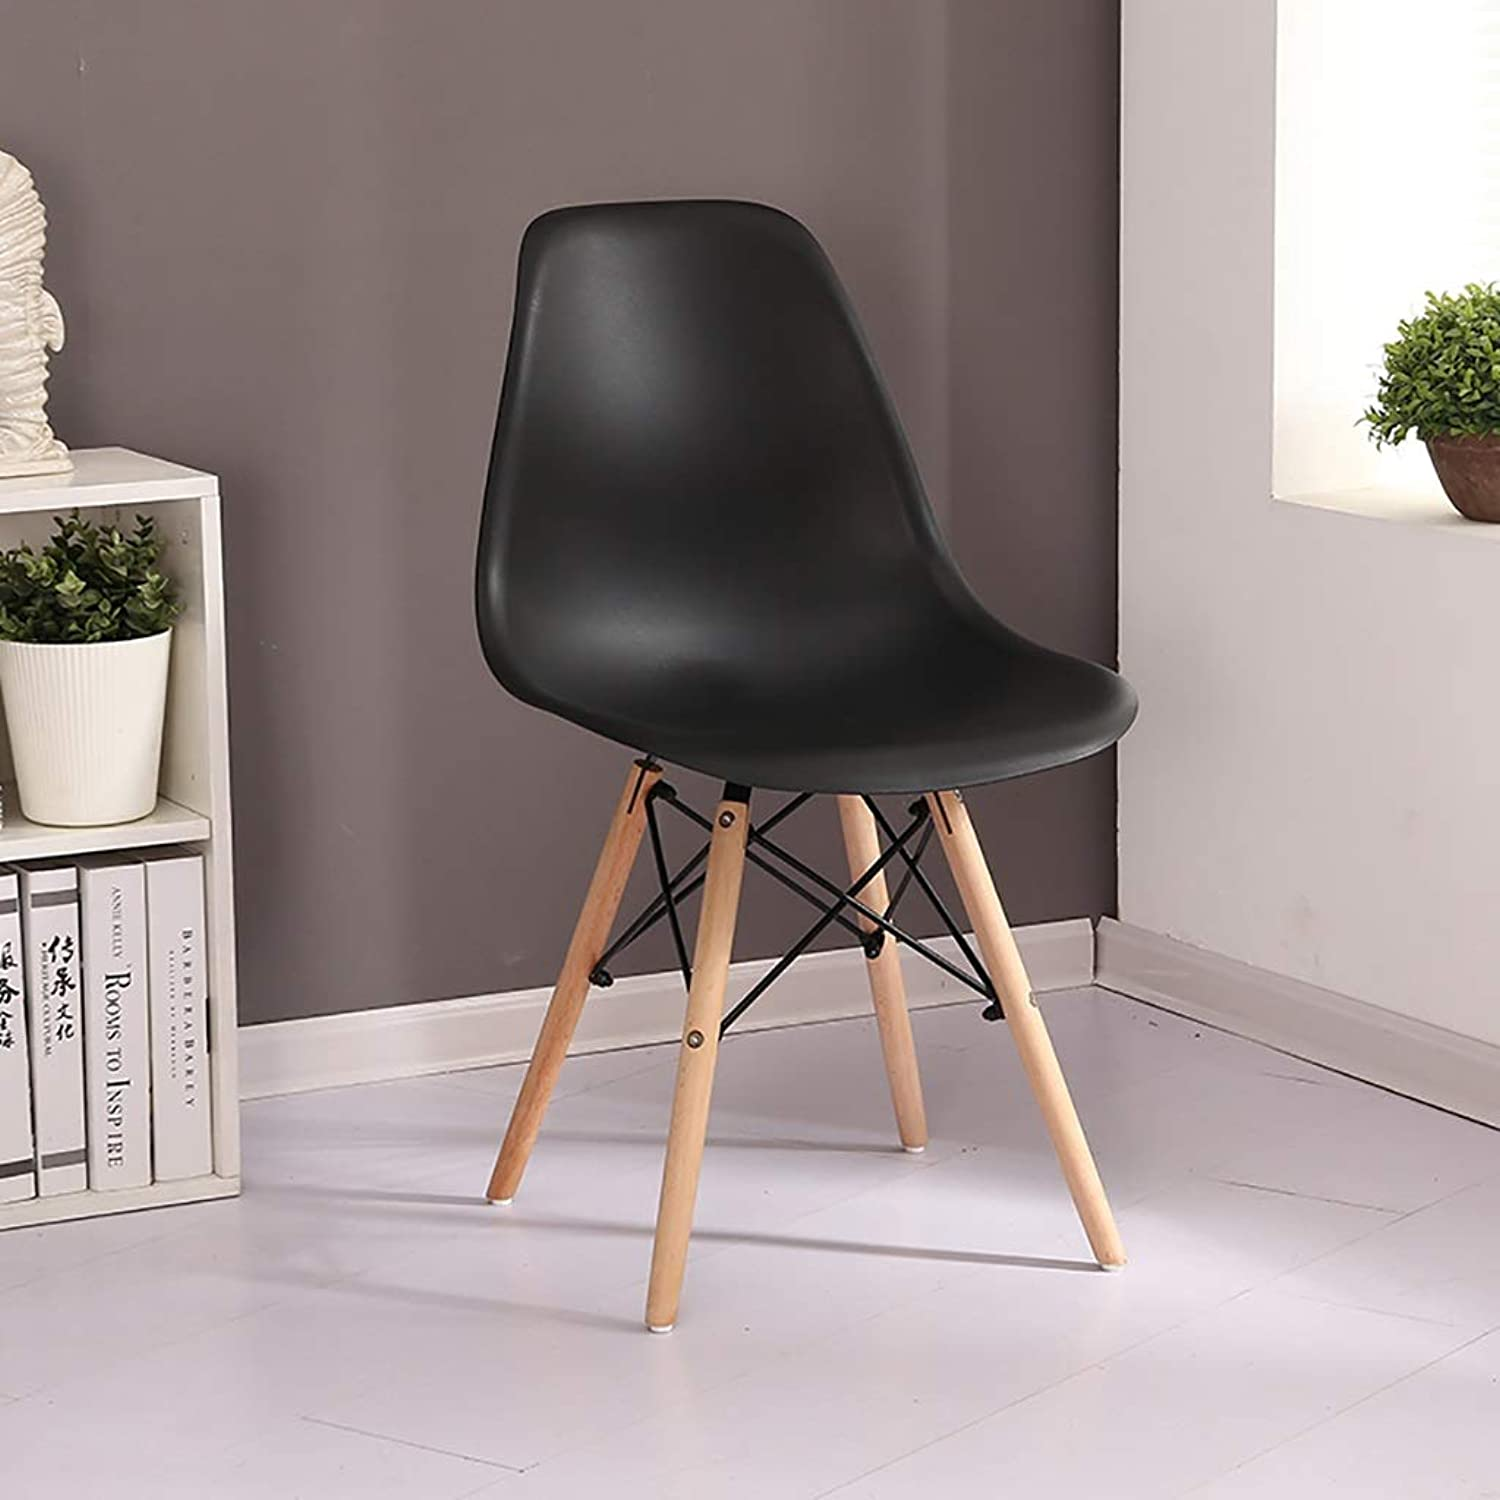 Desk Chair Fashion backrest Meeting Room Reception Chairs Restaurant Bar Minimalist Chairs Living Room Study Computer Chair (5 colors are Optional) Size  41  39  81cm (color   A)